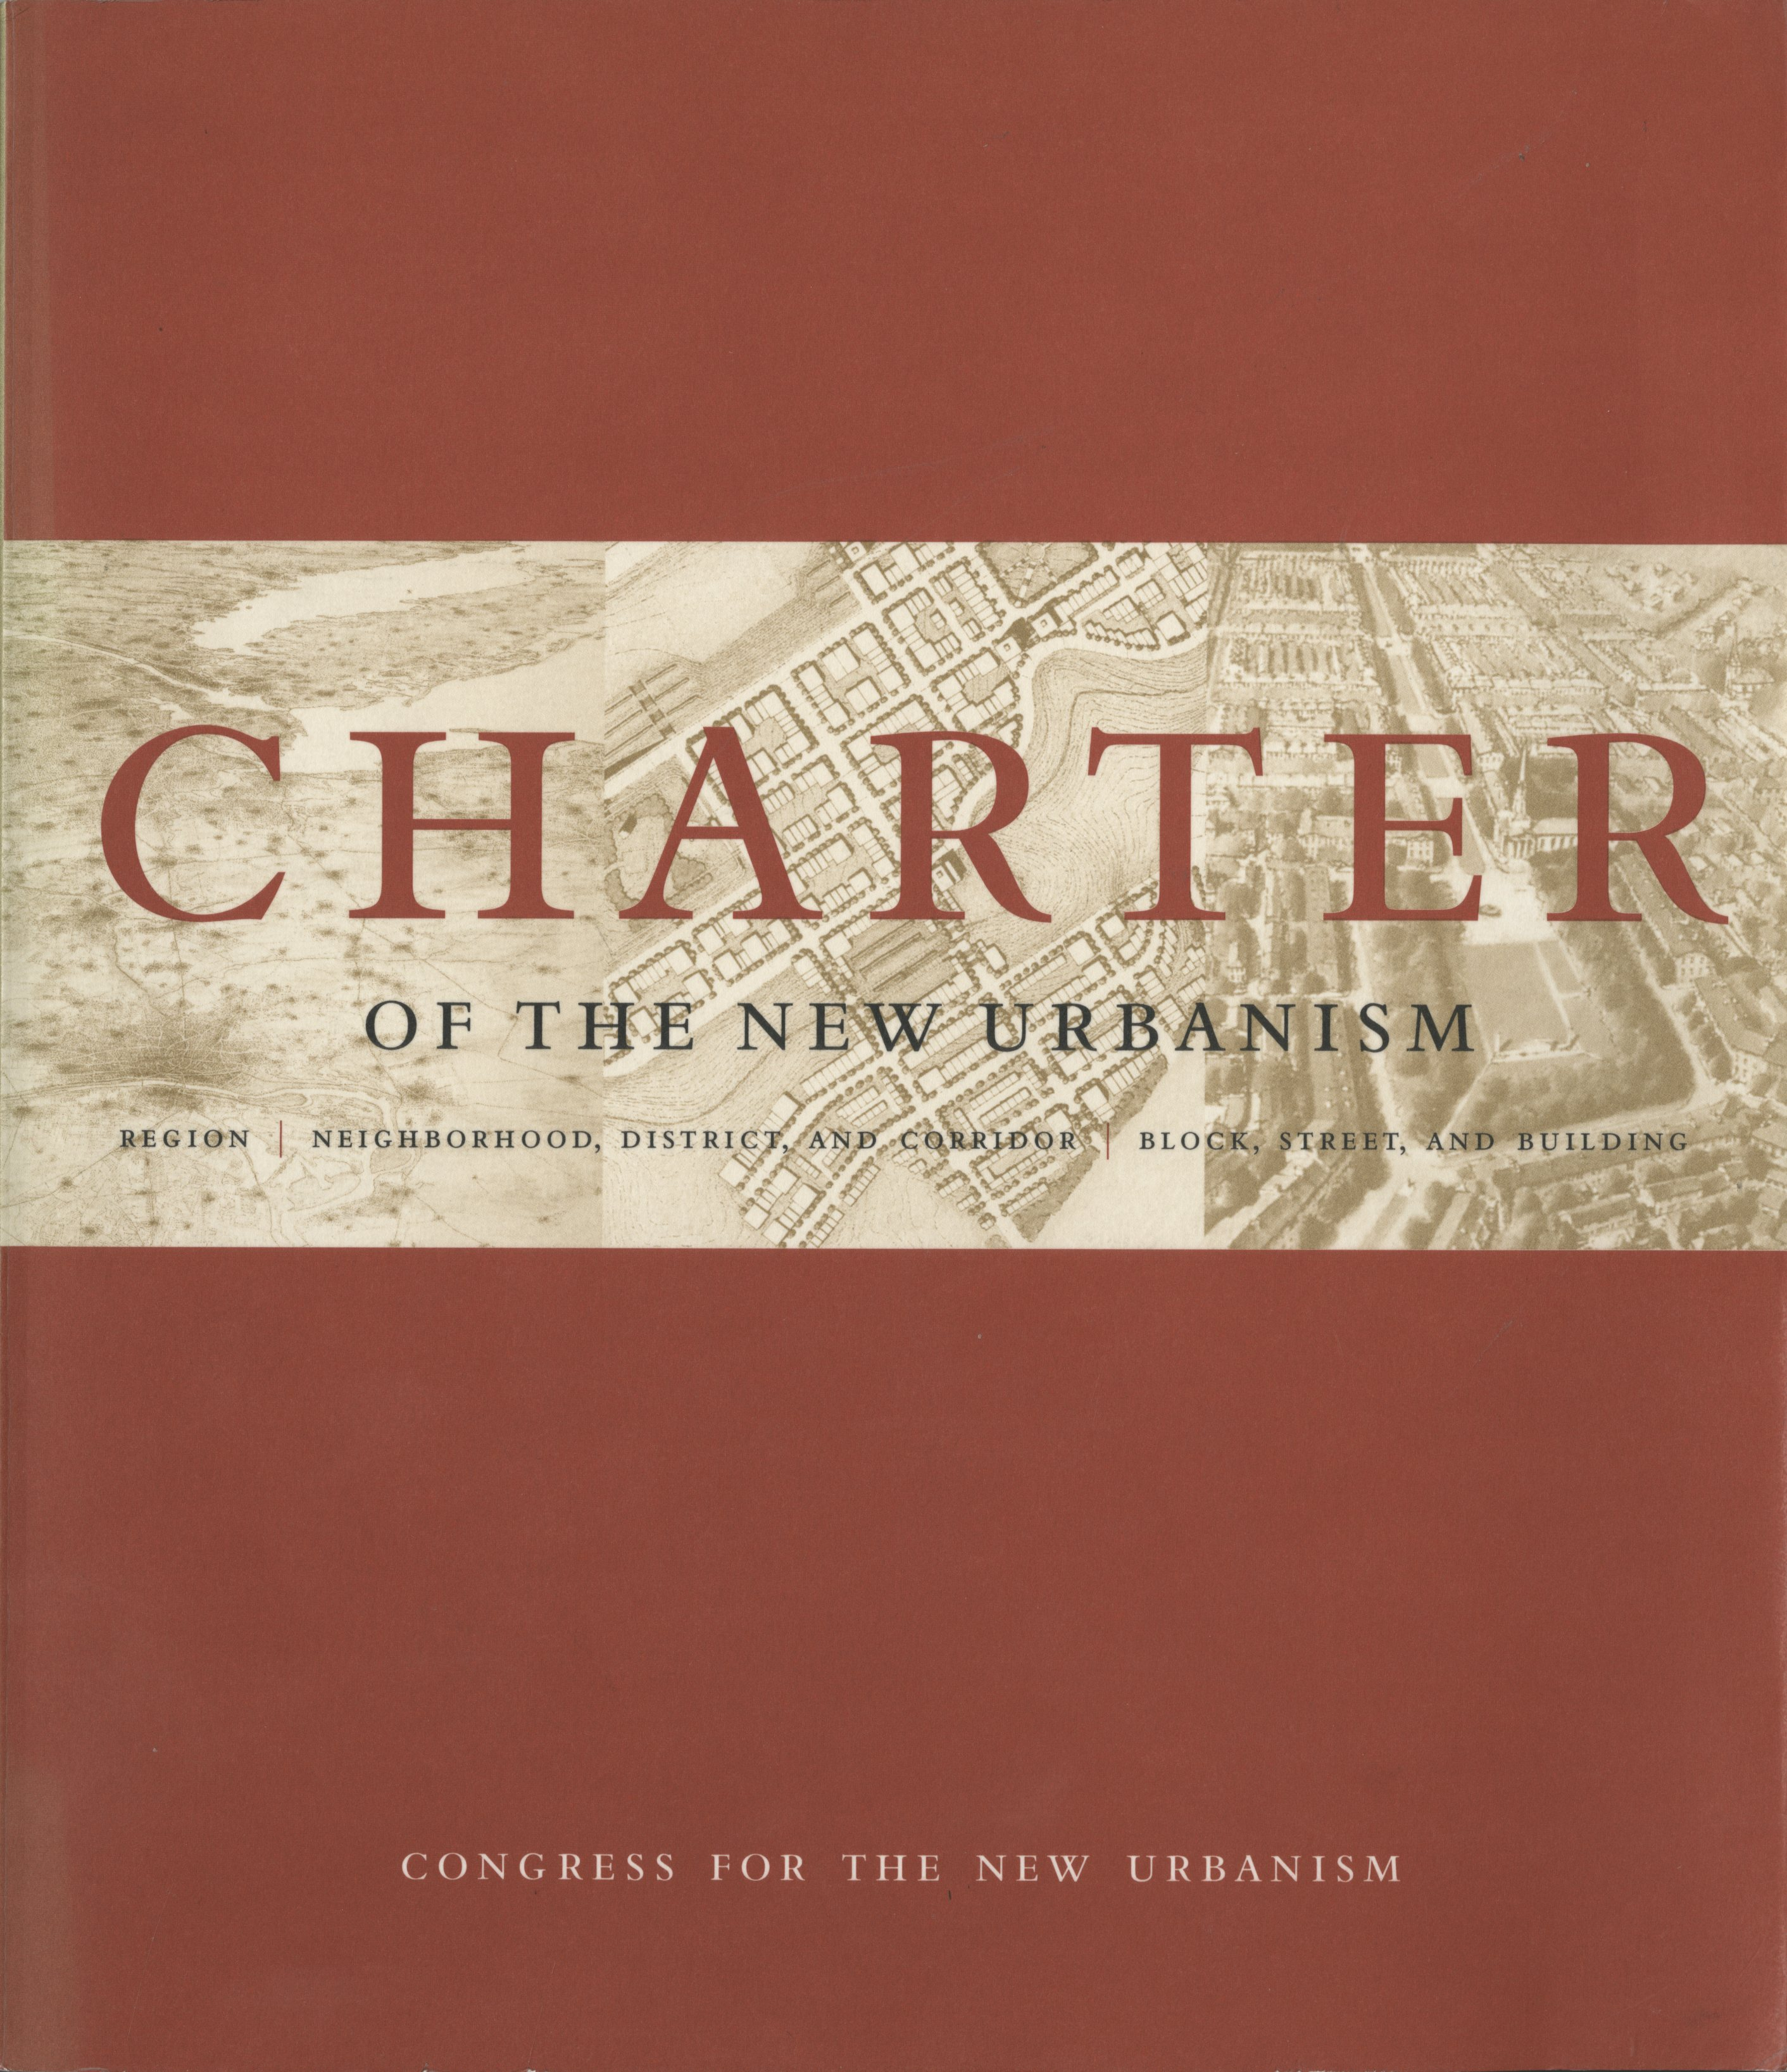 """""""Charter of the New Urbanism 1st Edition"""" Book Cover"""